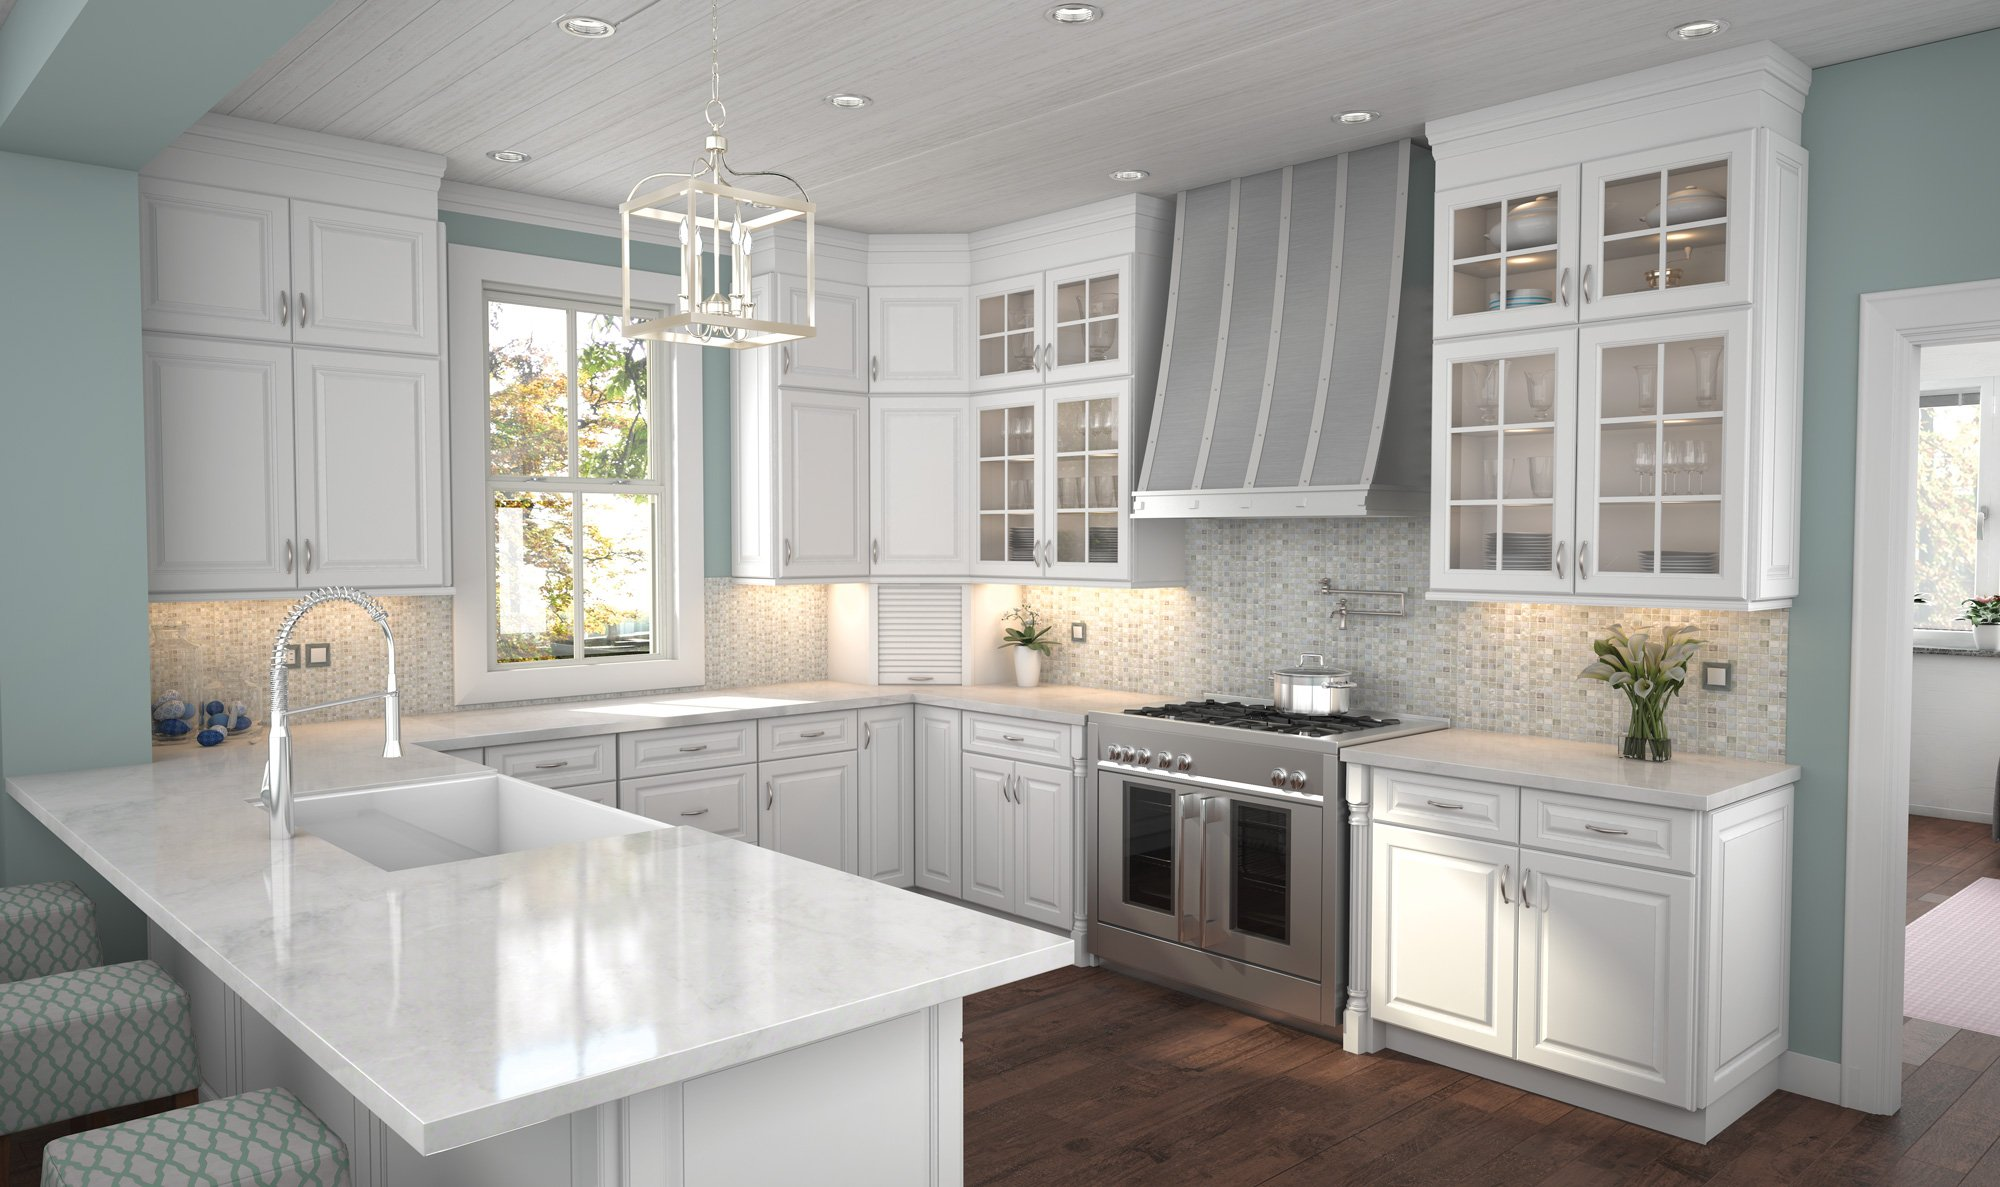 affordable cabinets and countertops in Atlanta